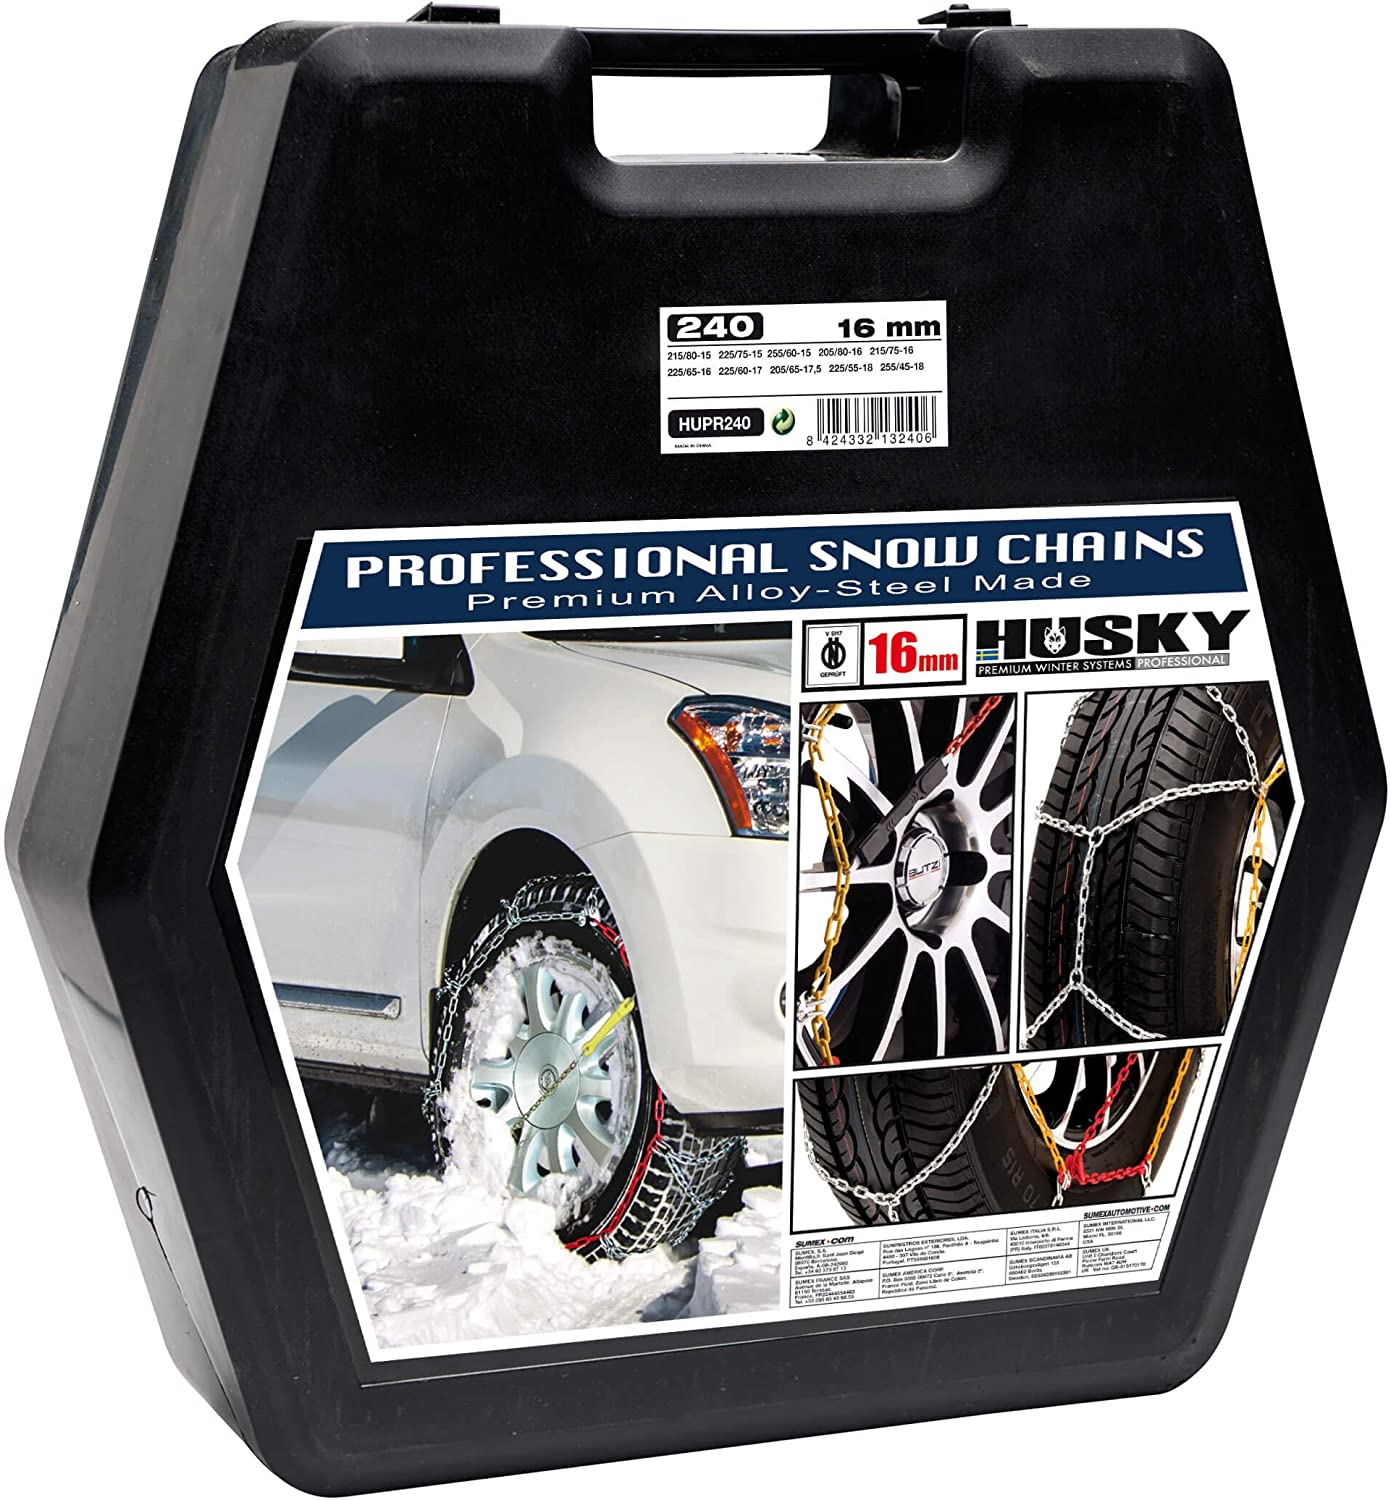 Sumex Hupr240 4wd Husky Professional Snow Chains 16 Mm Auto